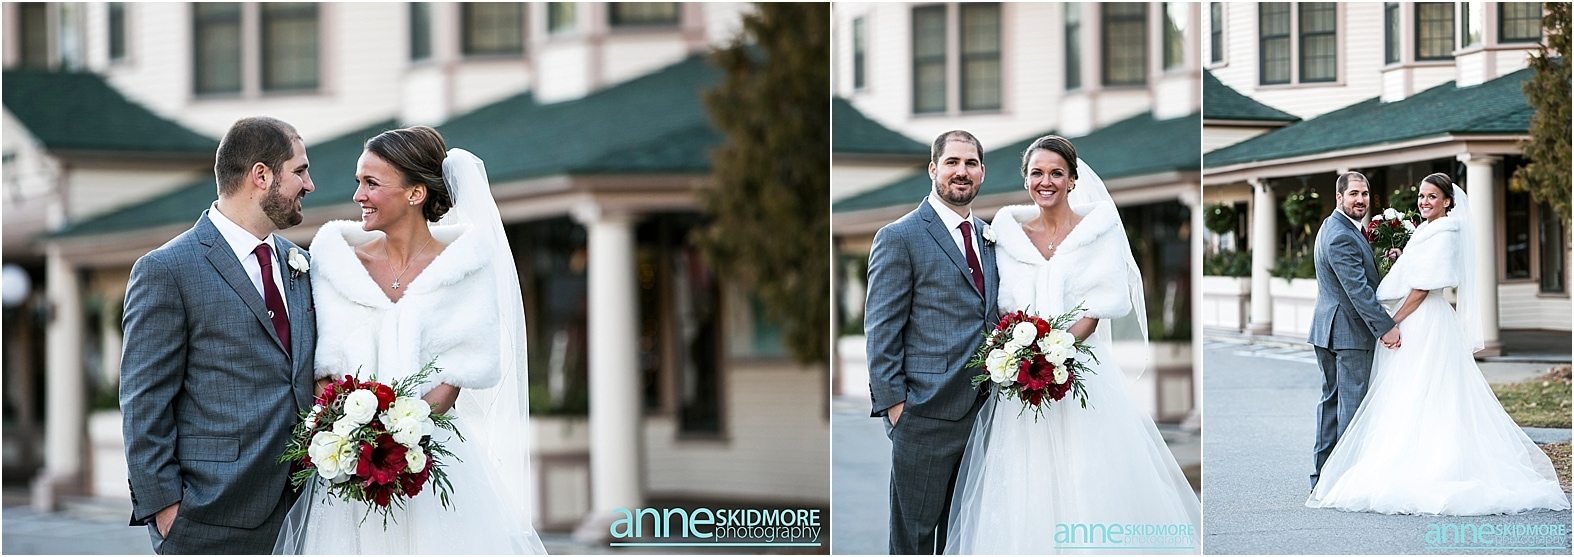 Wentworth_Inn_Wedding_029